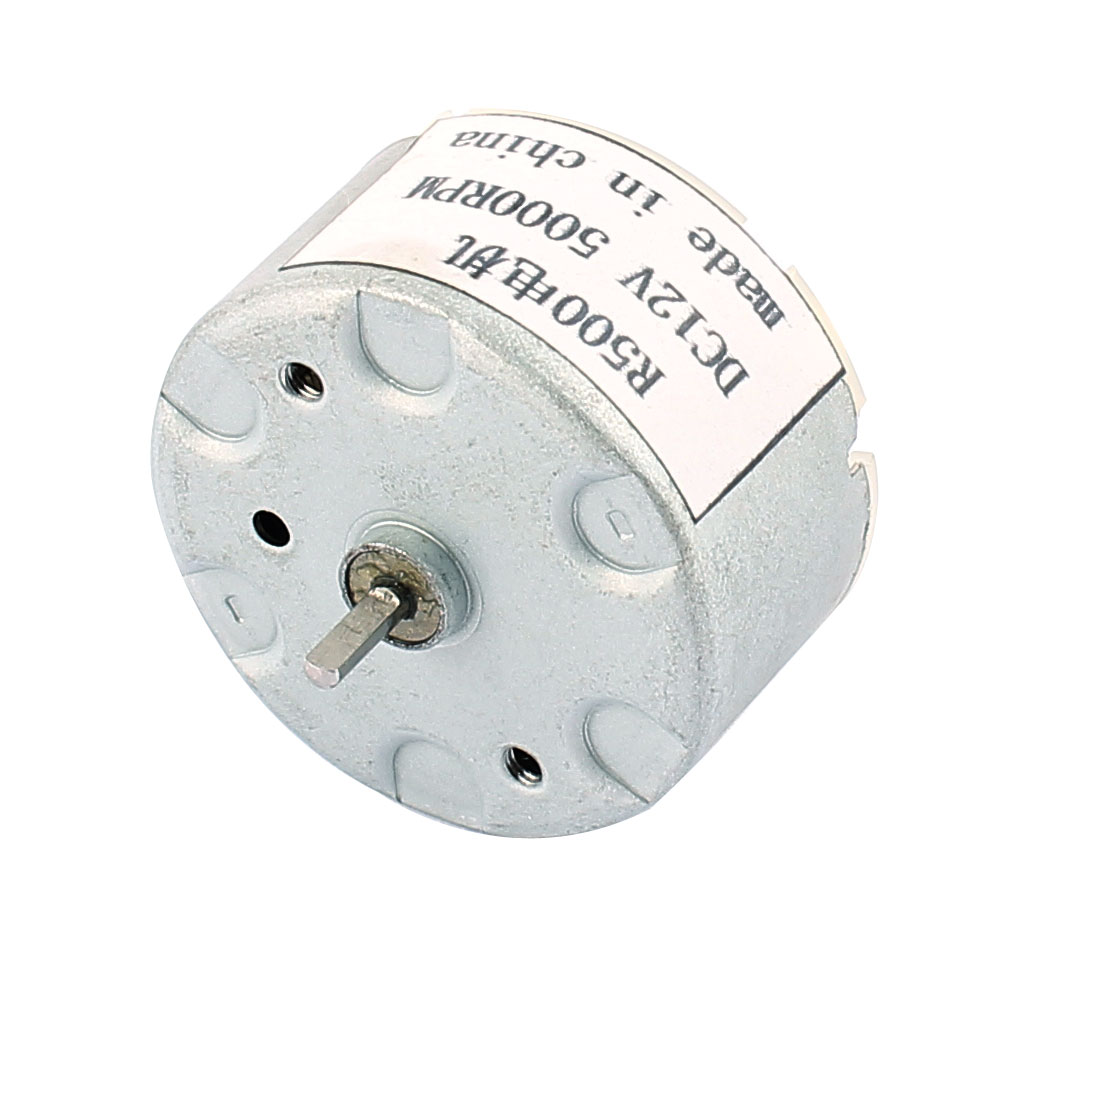 R500 DC 12V 5000RPM Flat Shaft Cylindrical Micro Model Magnetic DC Motor